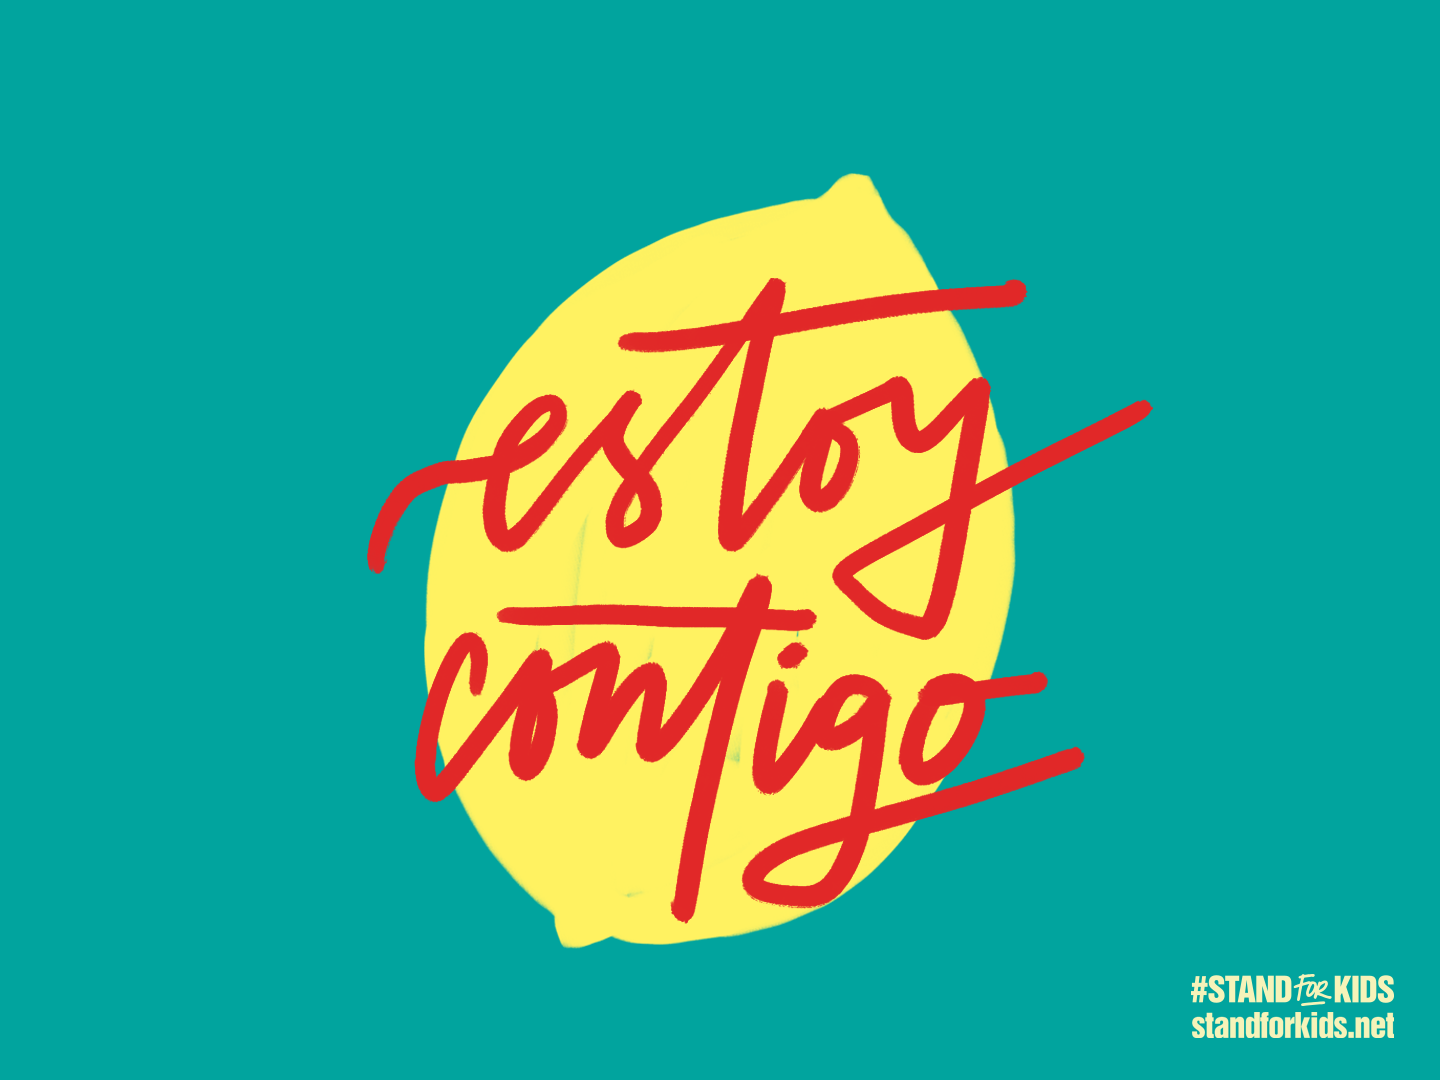 Estoy Contigo   Stand for Kids spanish stand for kids families belong together social campaign social media calligraphy script hand type hand lettering lettering art design illustration